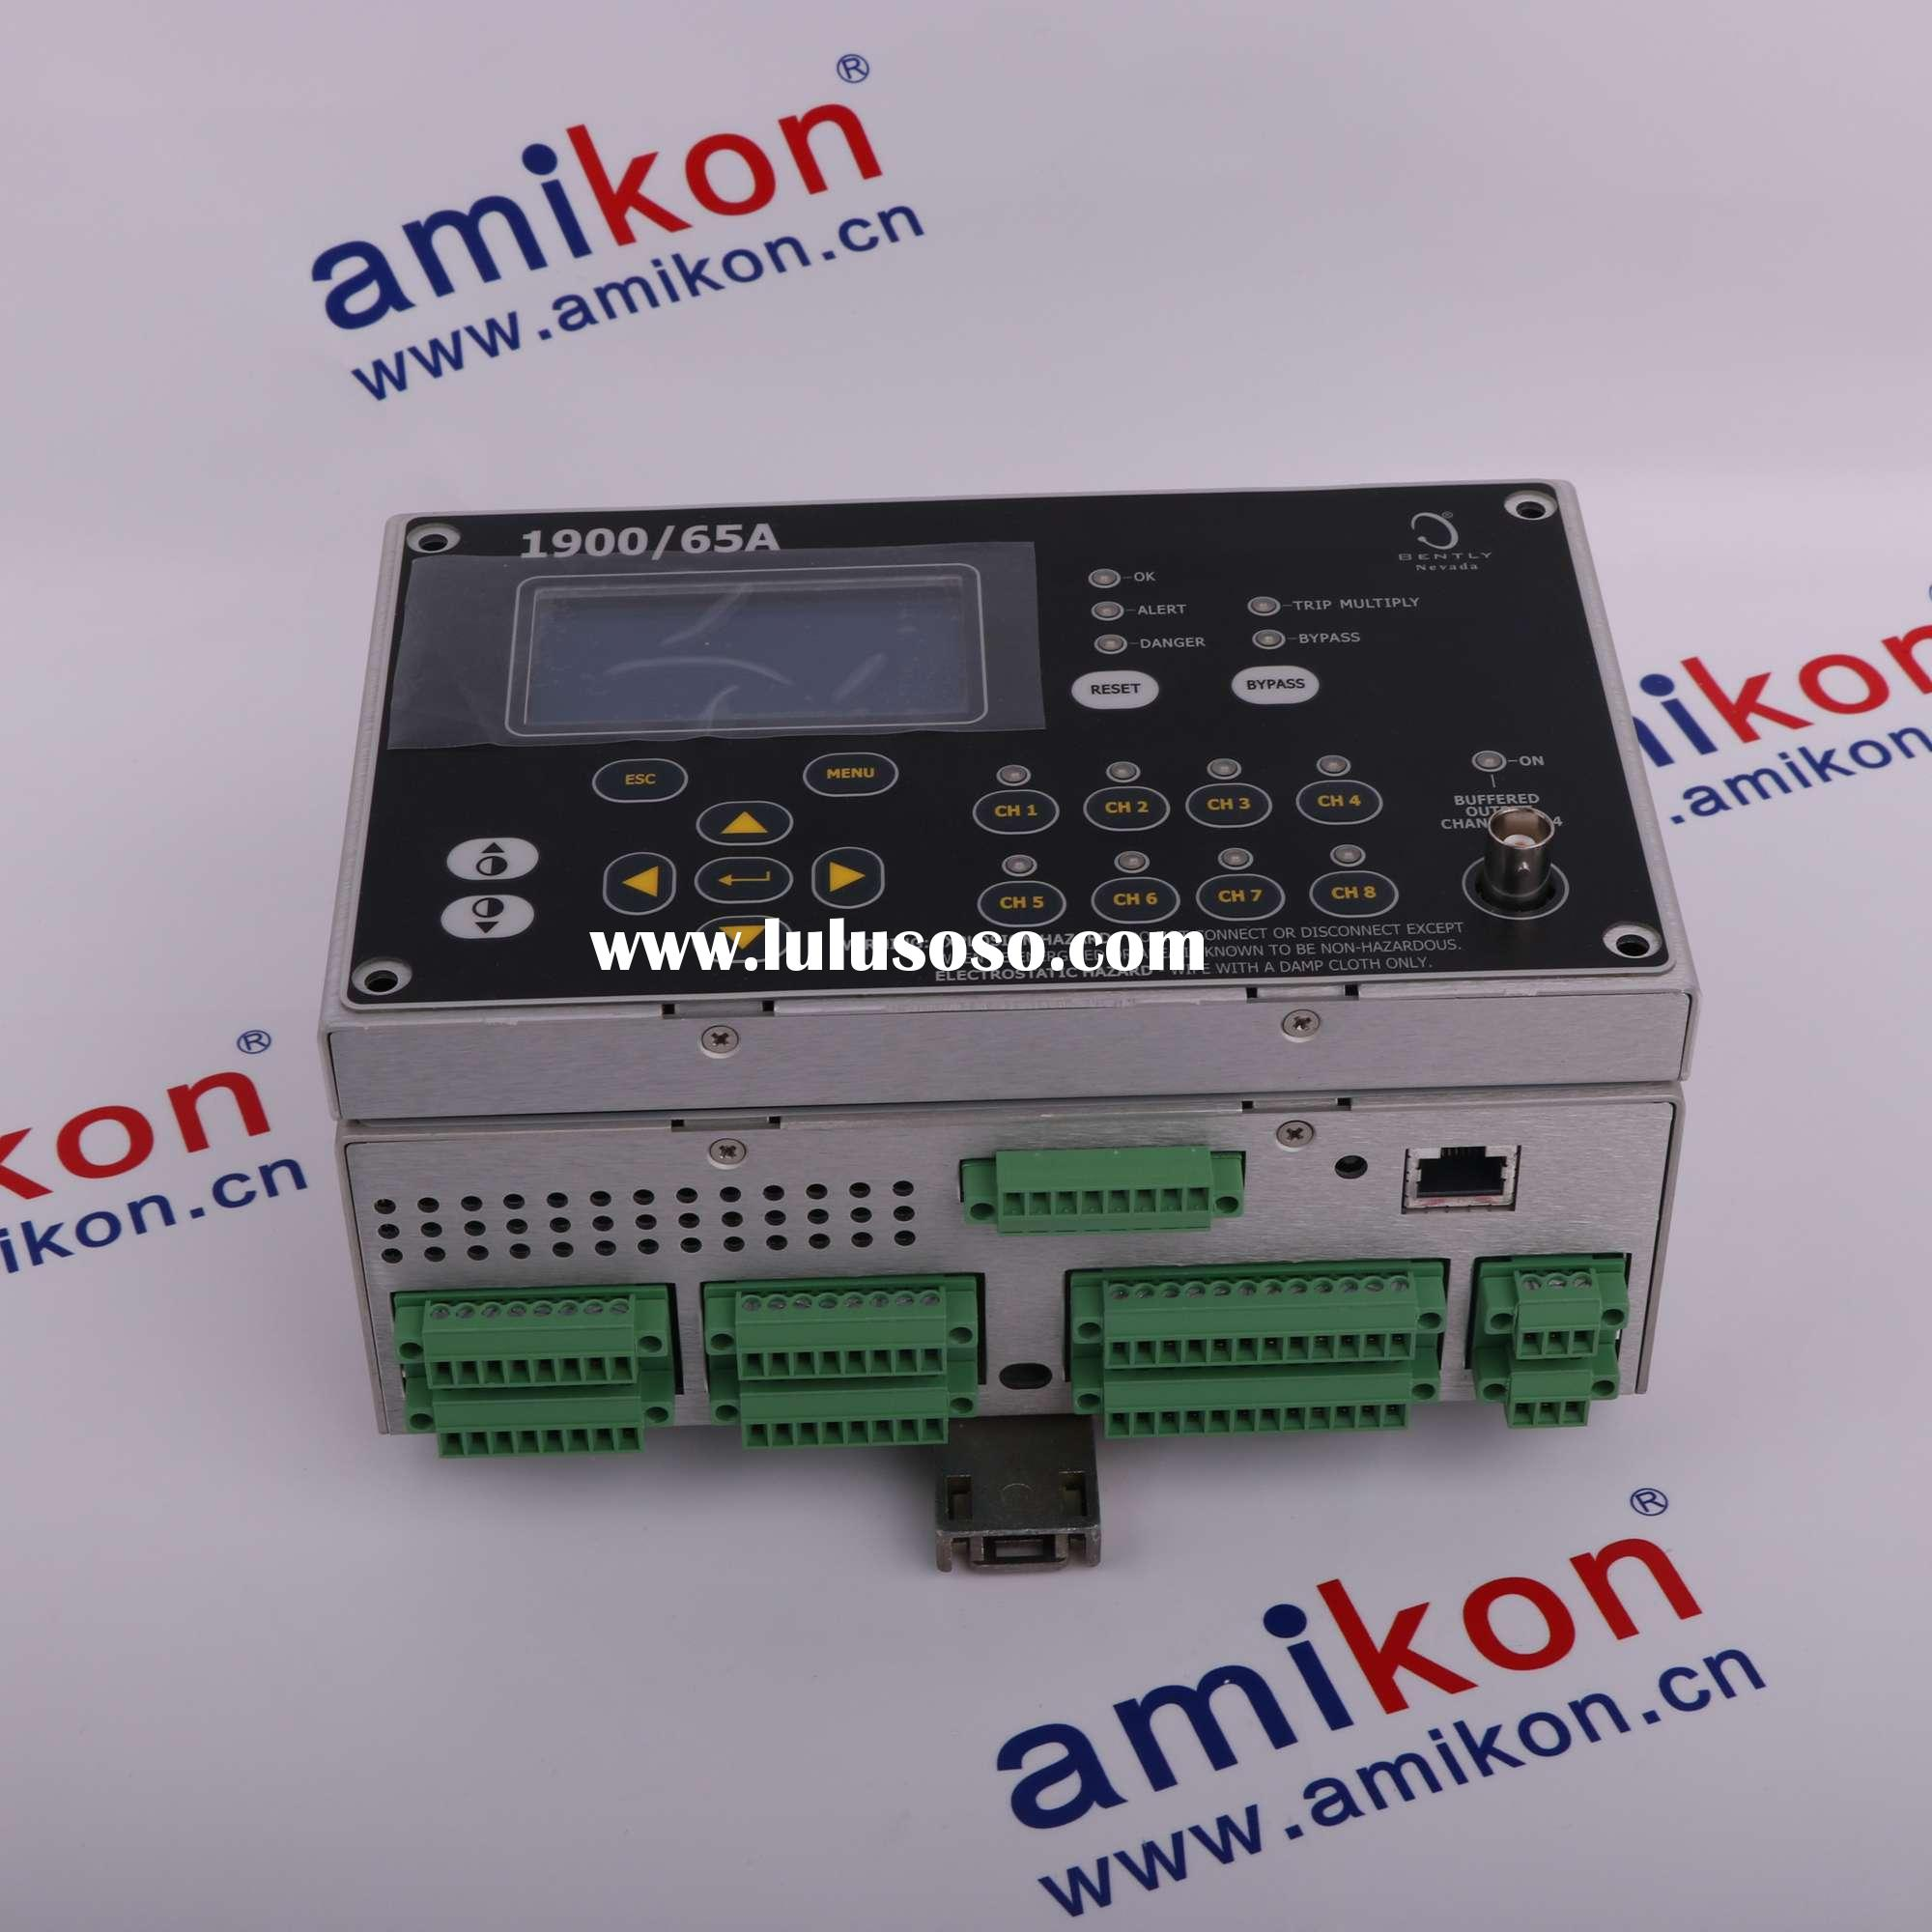 Bently Nevada 3500 PN 133396-01 Overspeed Detection I/O Module